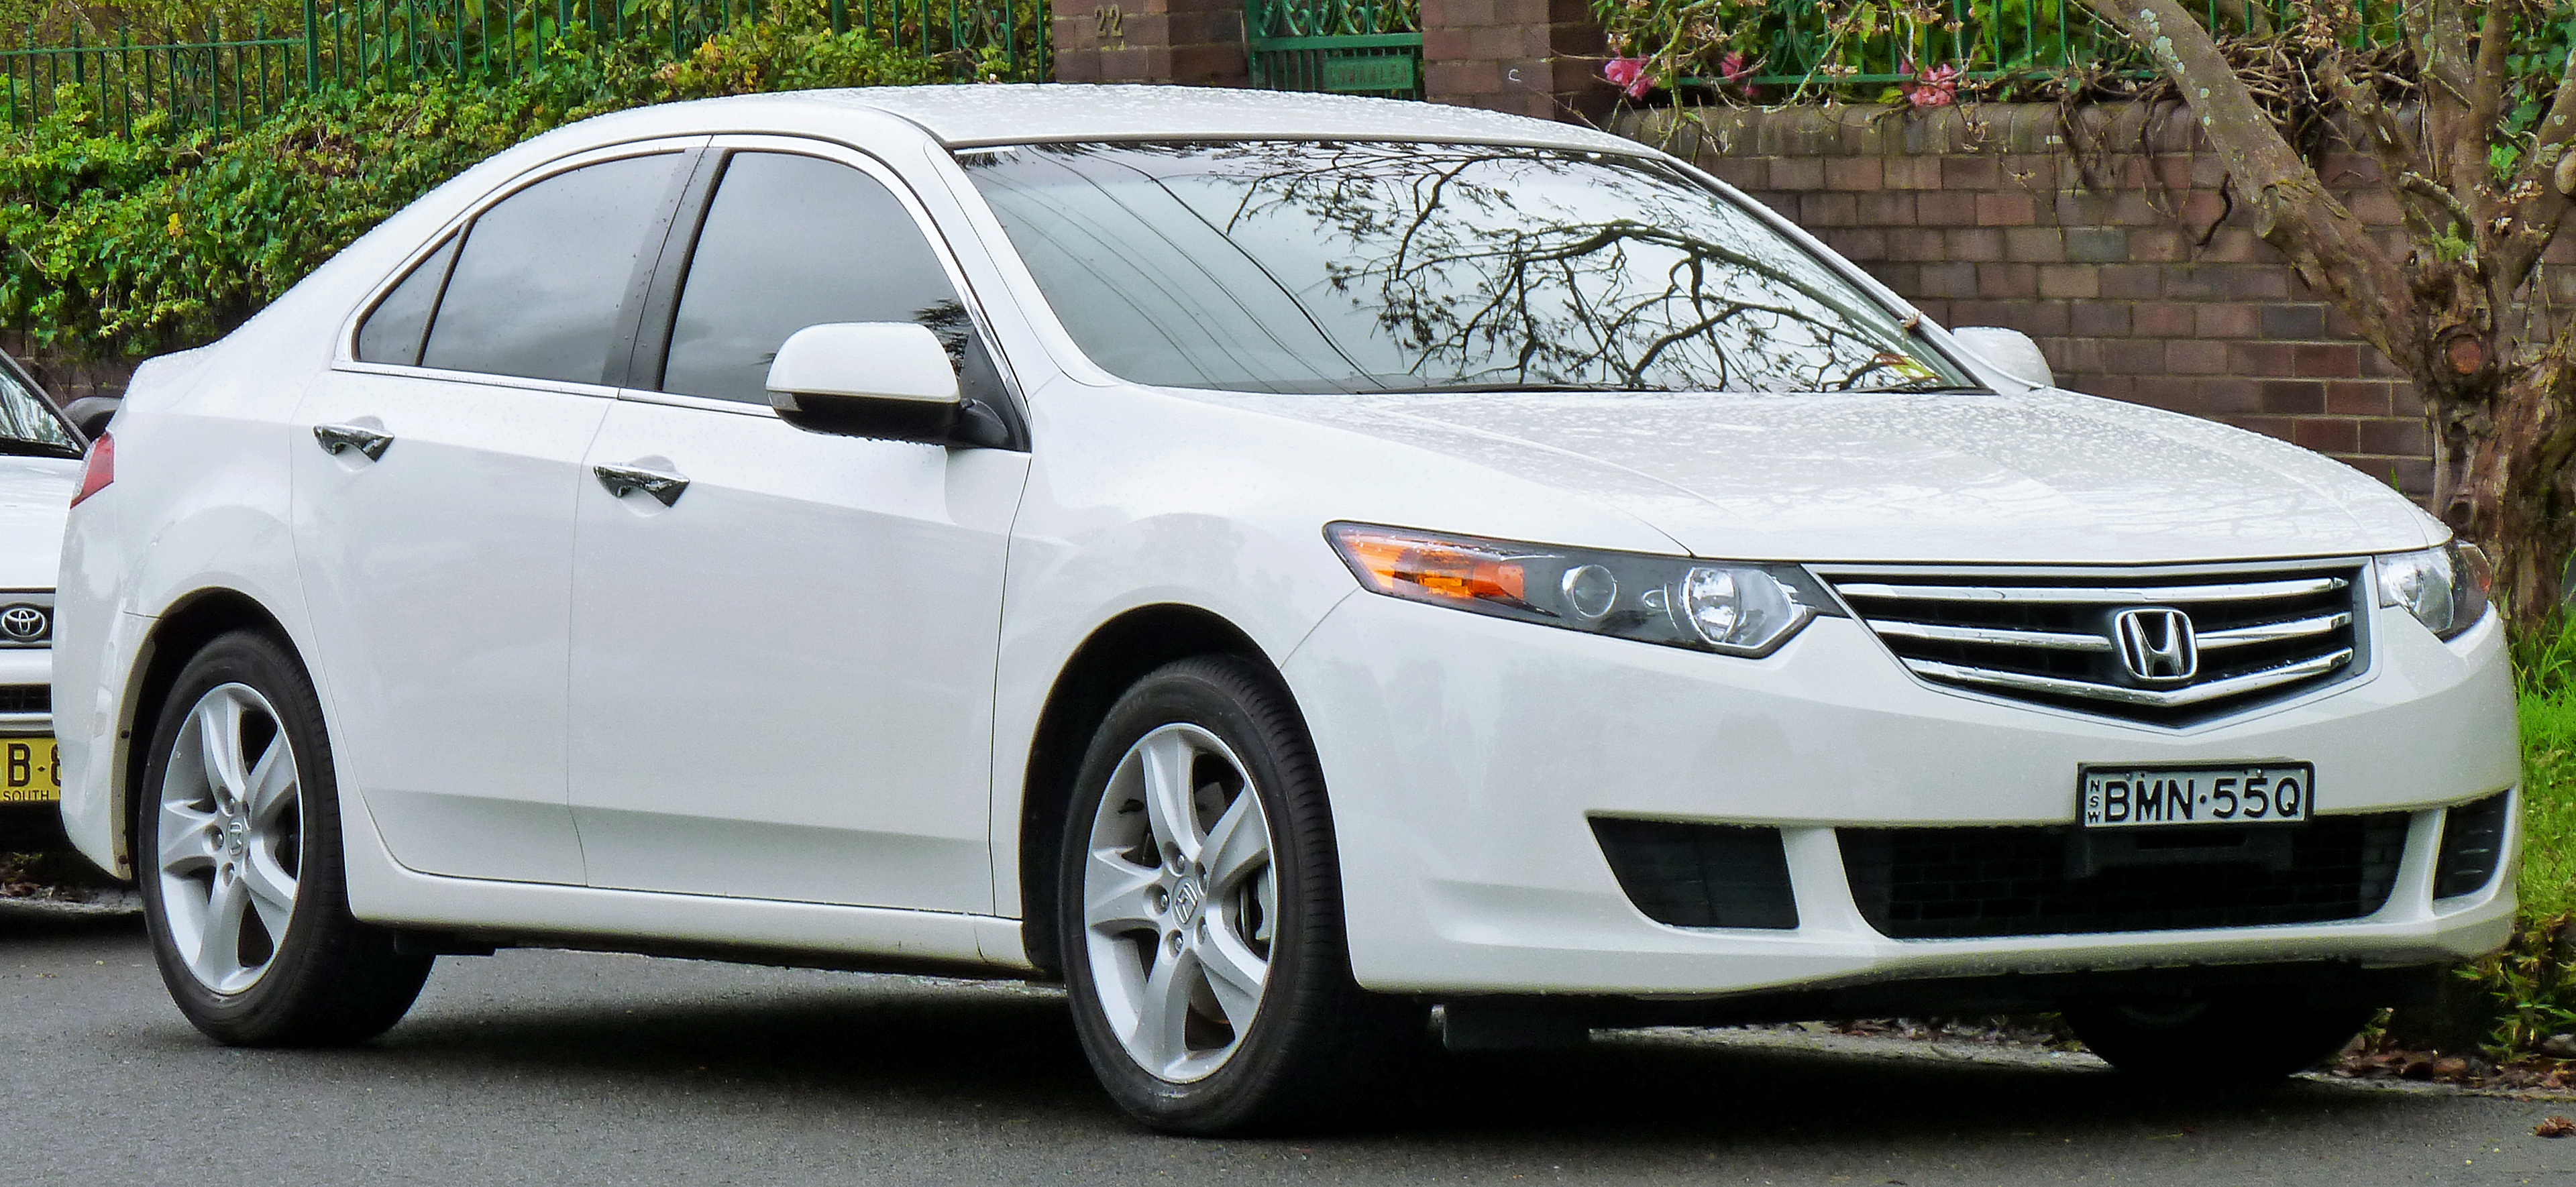 honda accord viii sedan 2014 pics #1